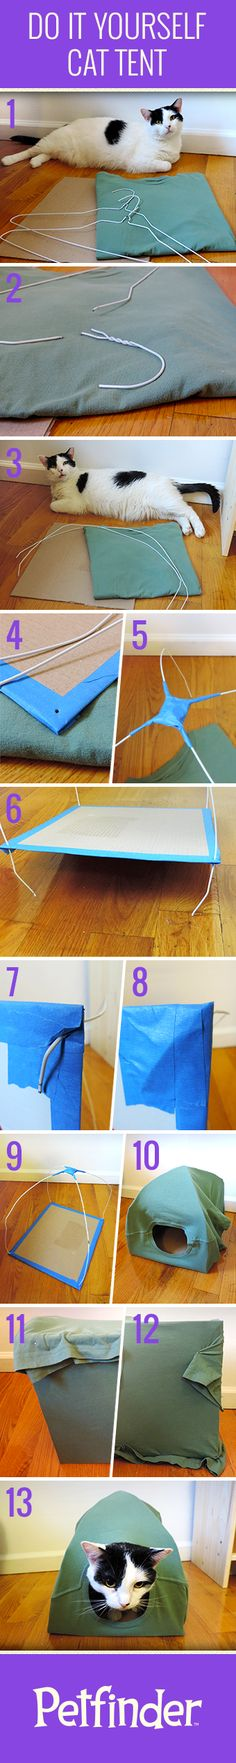 If your cat likes to hide in boxes or bags she'll love her very own Cat Tent. Easy DIY with a couple coat hangers, cardboard, tape and an old t-shirt!